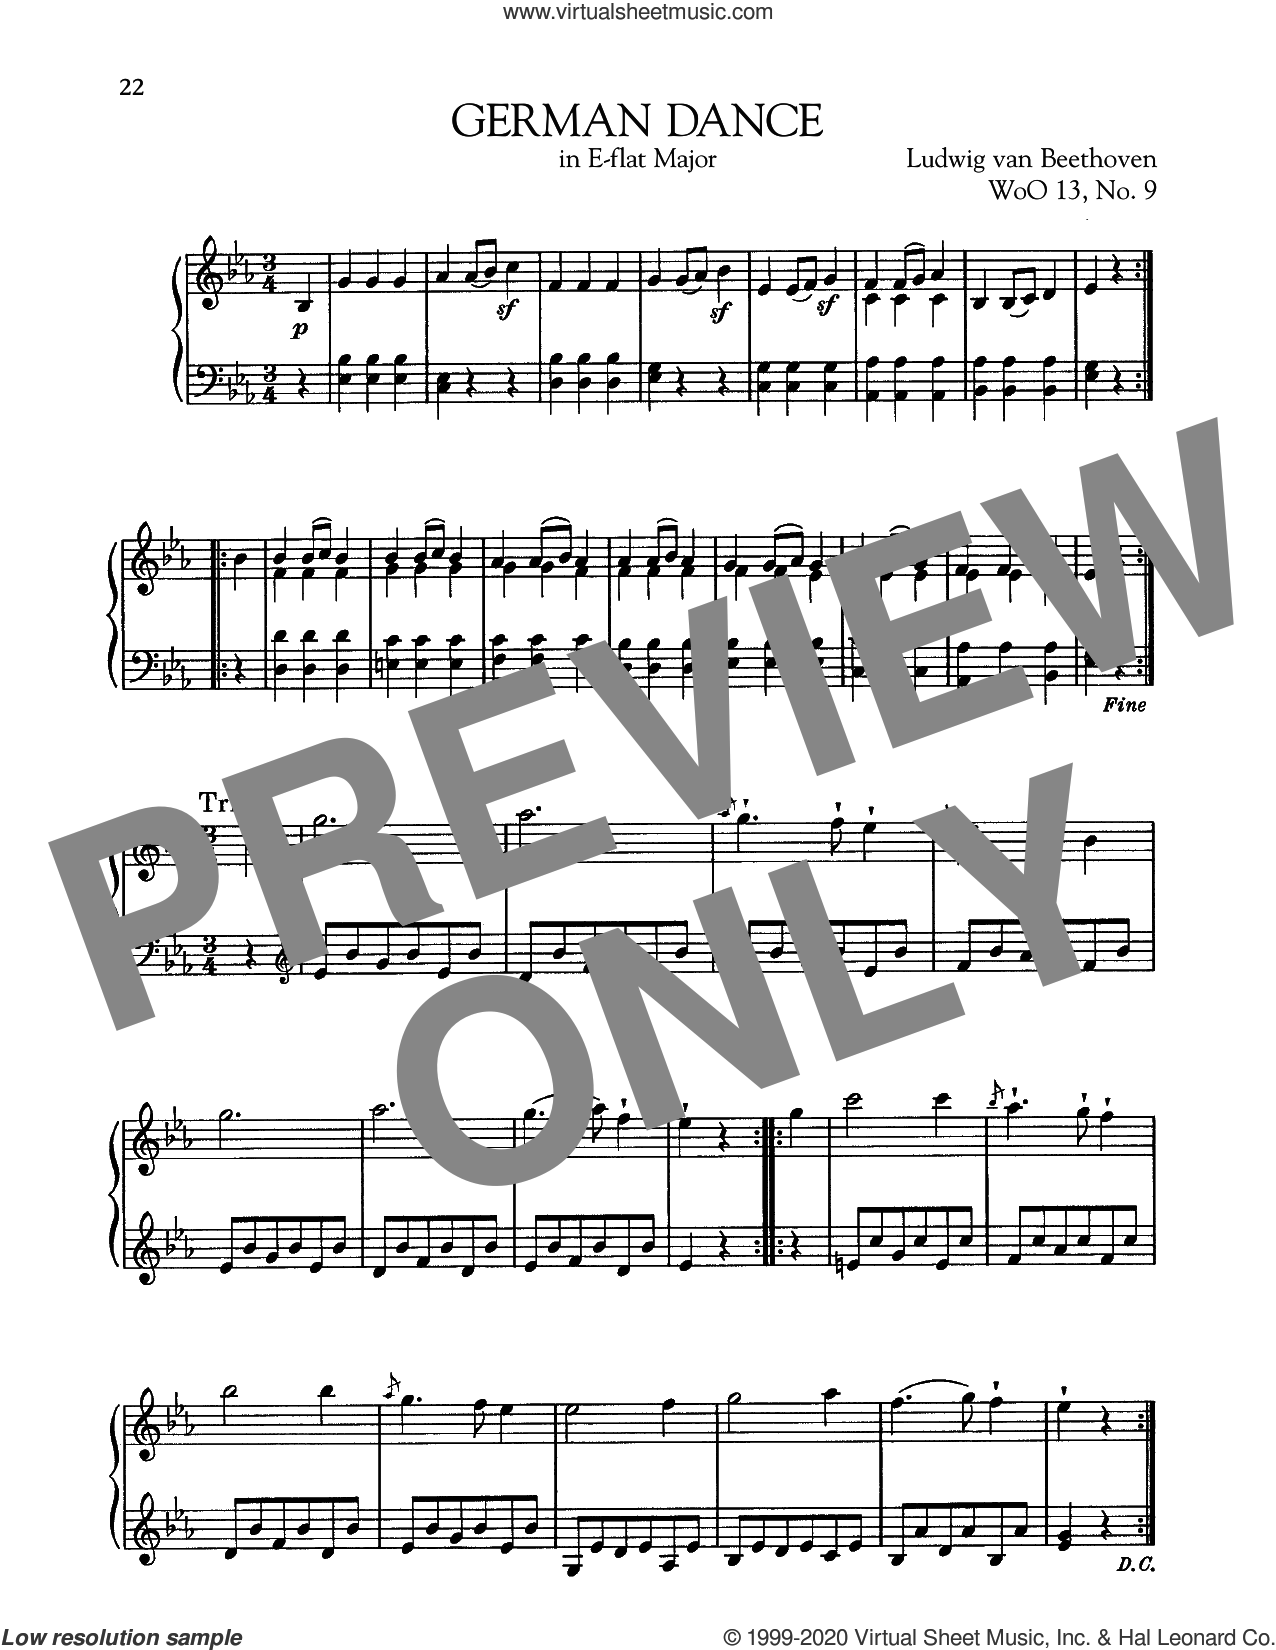 German Dance In E-Flat Major, WoO 13, No. 9 sheet music for piano solo by Ludwig van Beethoven, classical score, intermediate skill level